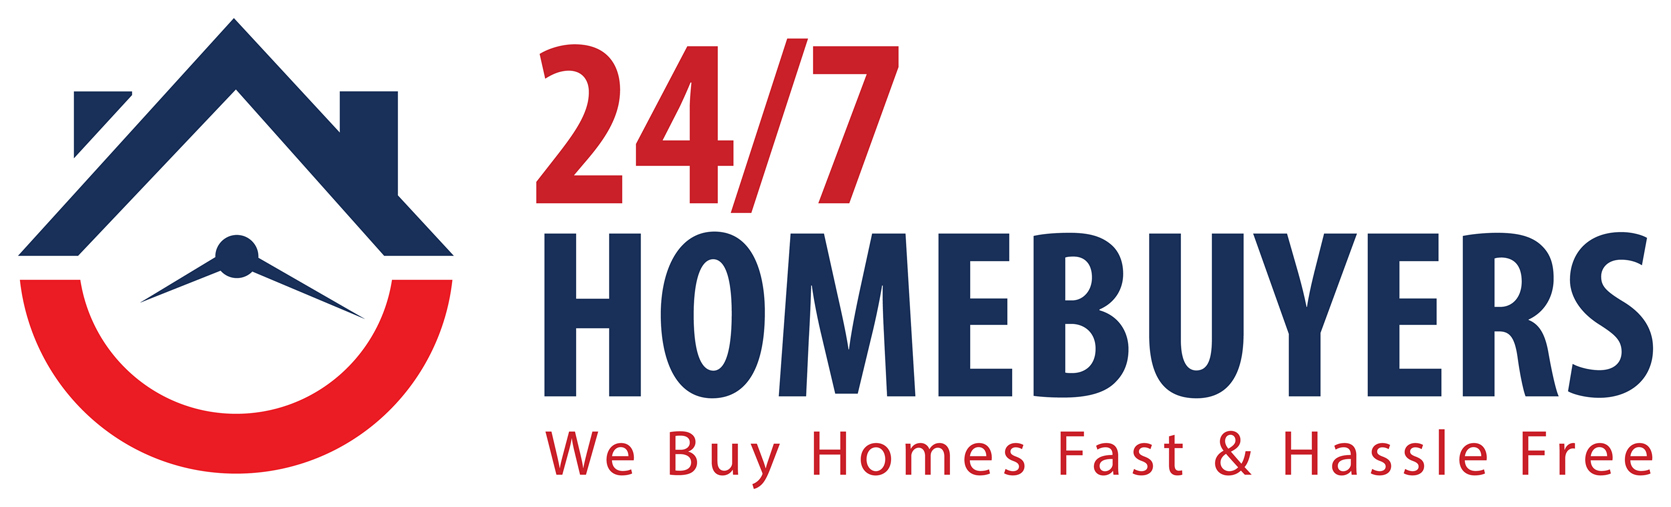 24/7 Home Buyers